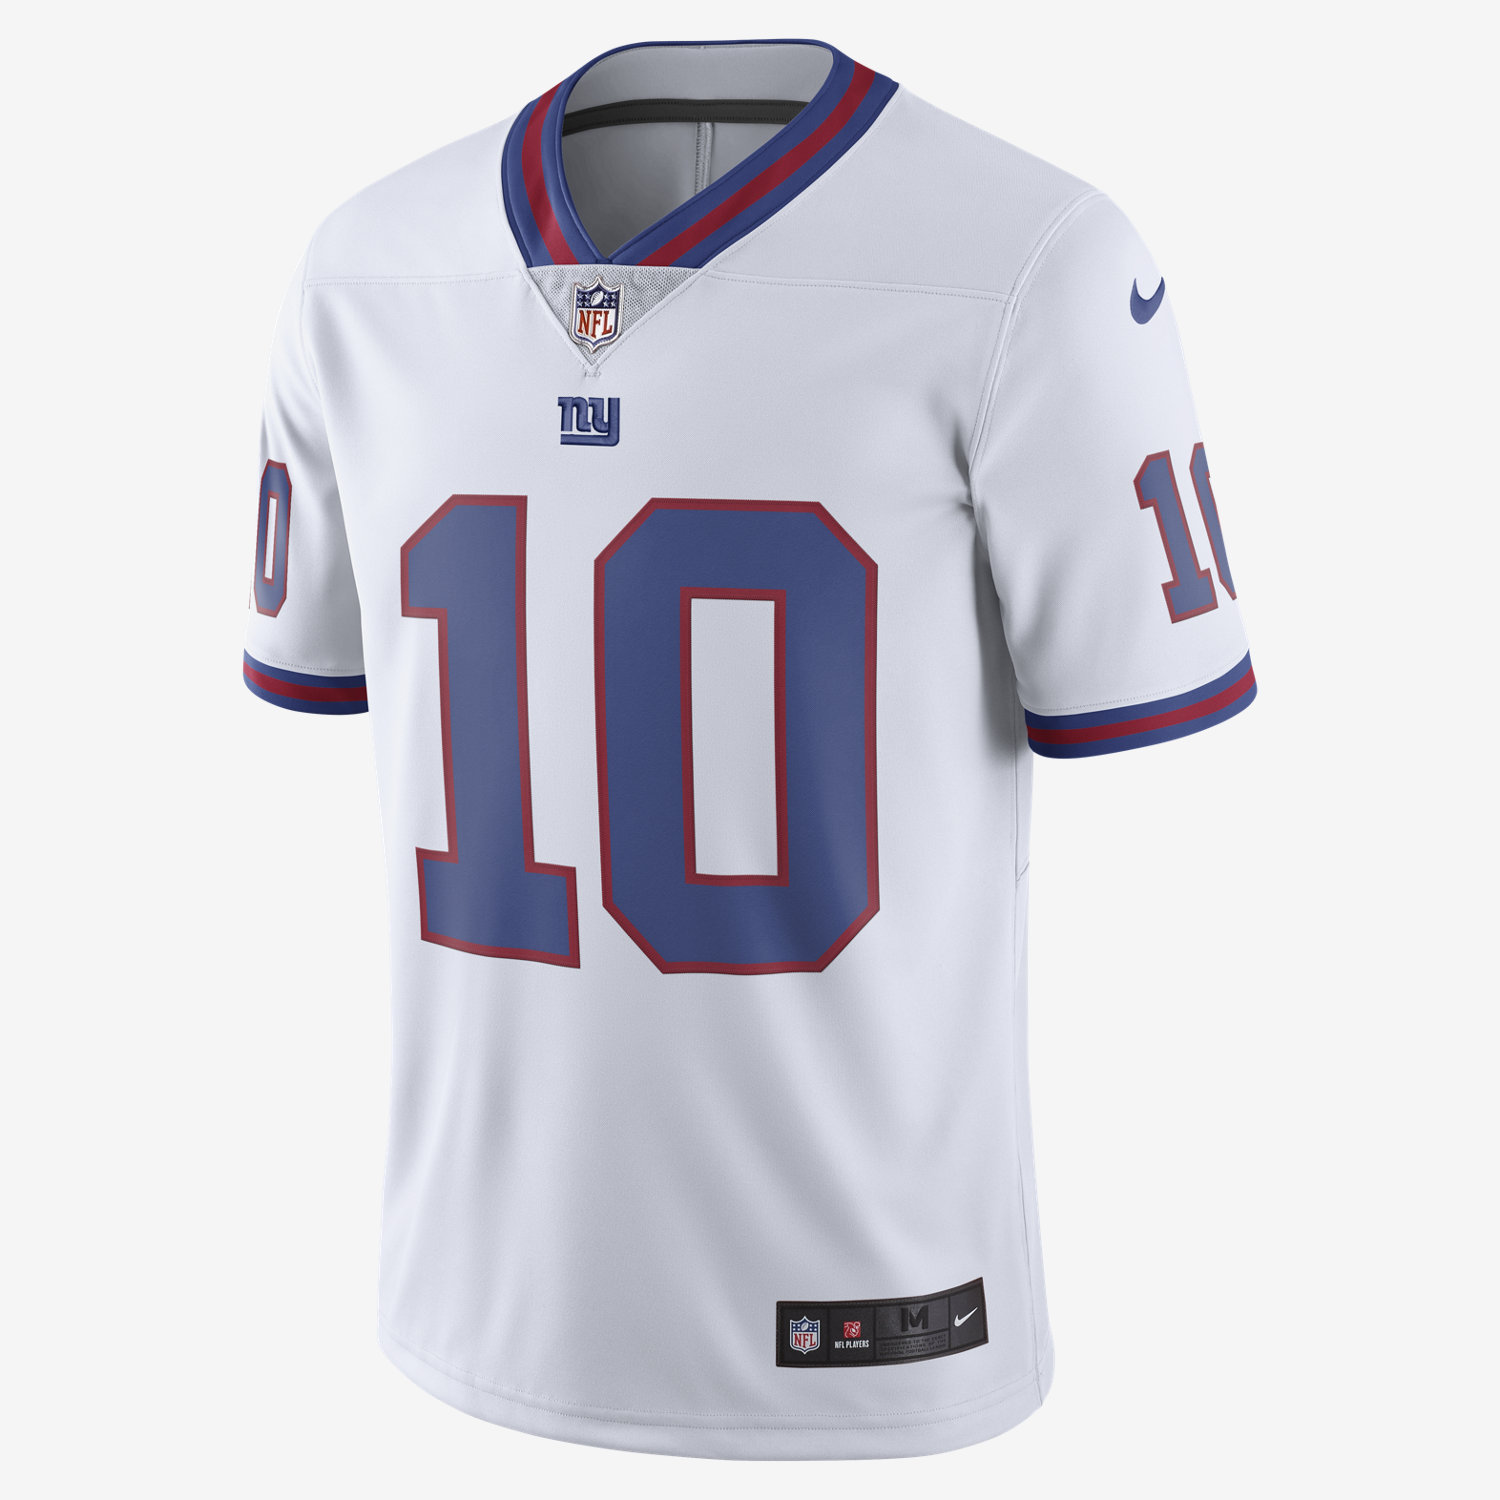 6c3b90c4119 ... get nfl new york giants color rush limited eli manning mens football  jersey. 9aee2 5c1ab